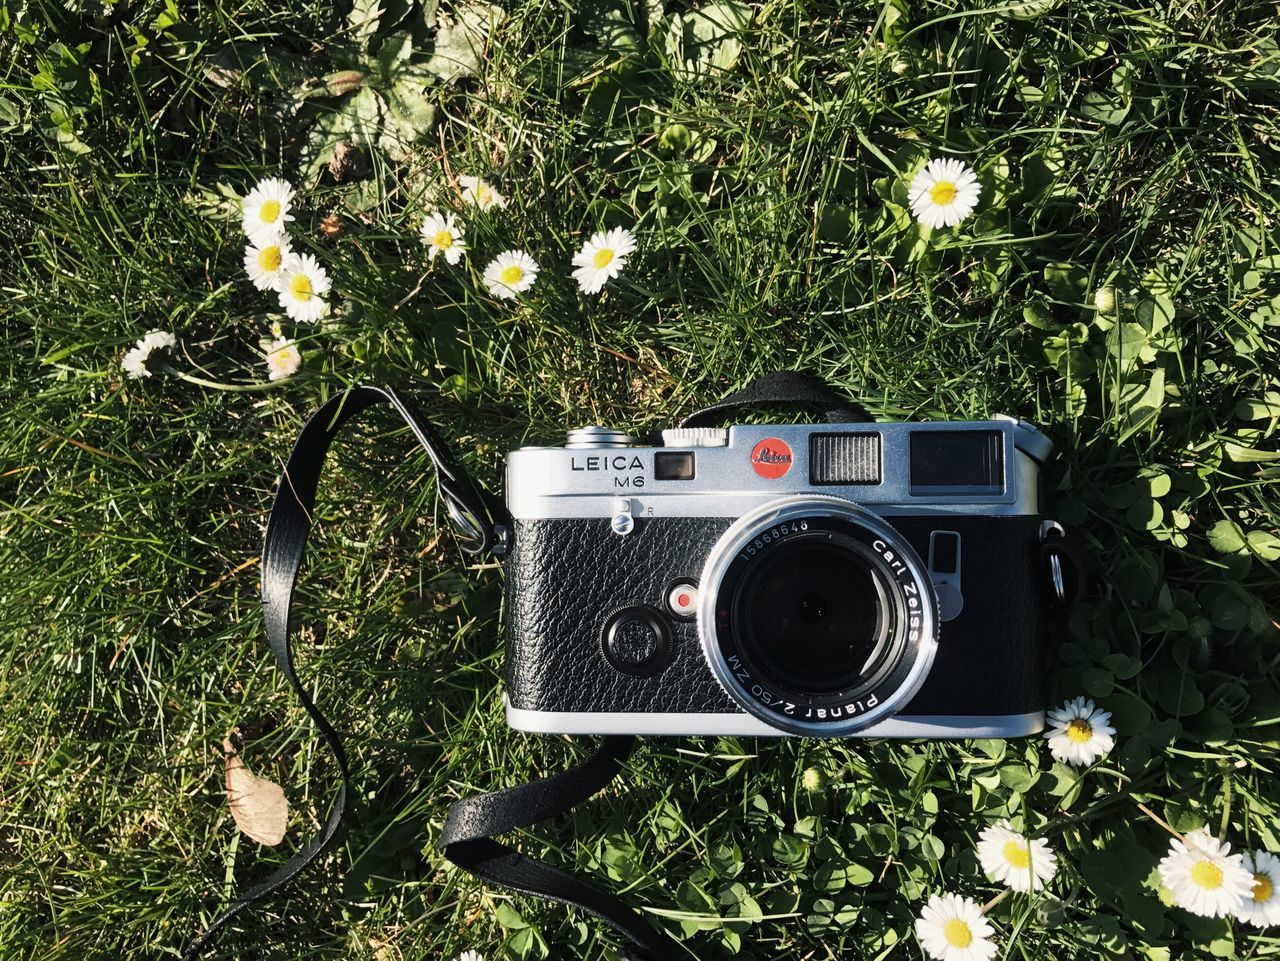 Love at first sight Photography Themes Camera - Photographic Equipment Old-fashioned Flower Nature Outdoors Film 35mm Leicam6 Leica Film Camera Film Photography Vscocam Snapseed Love CarlZeiss Kodak EyeEmNewHere